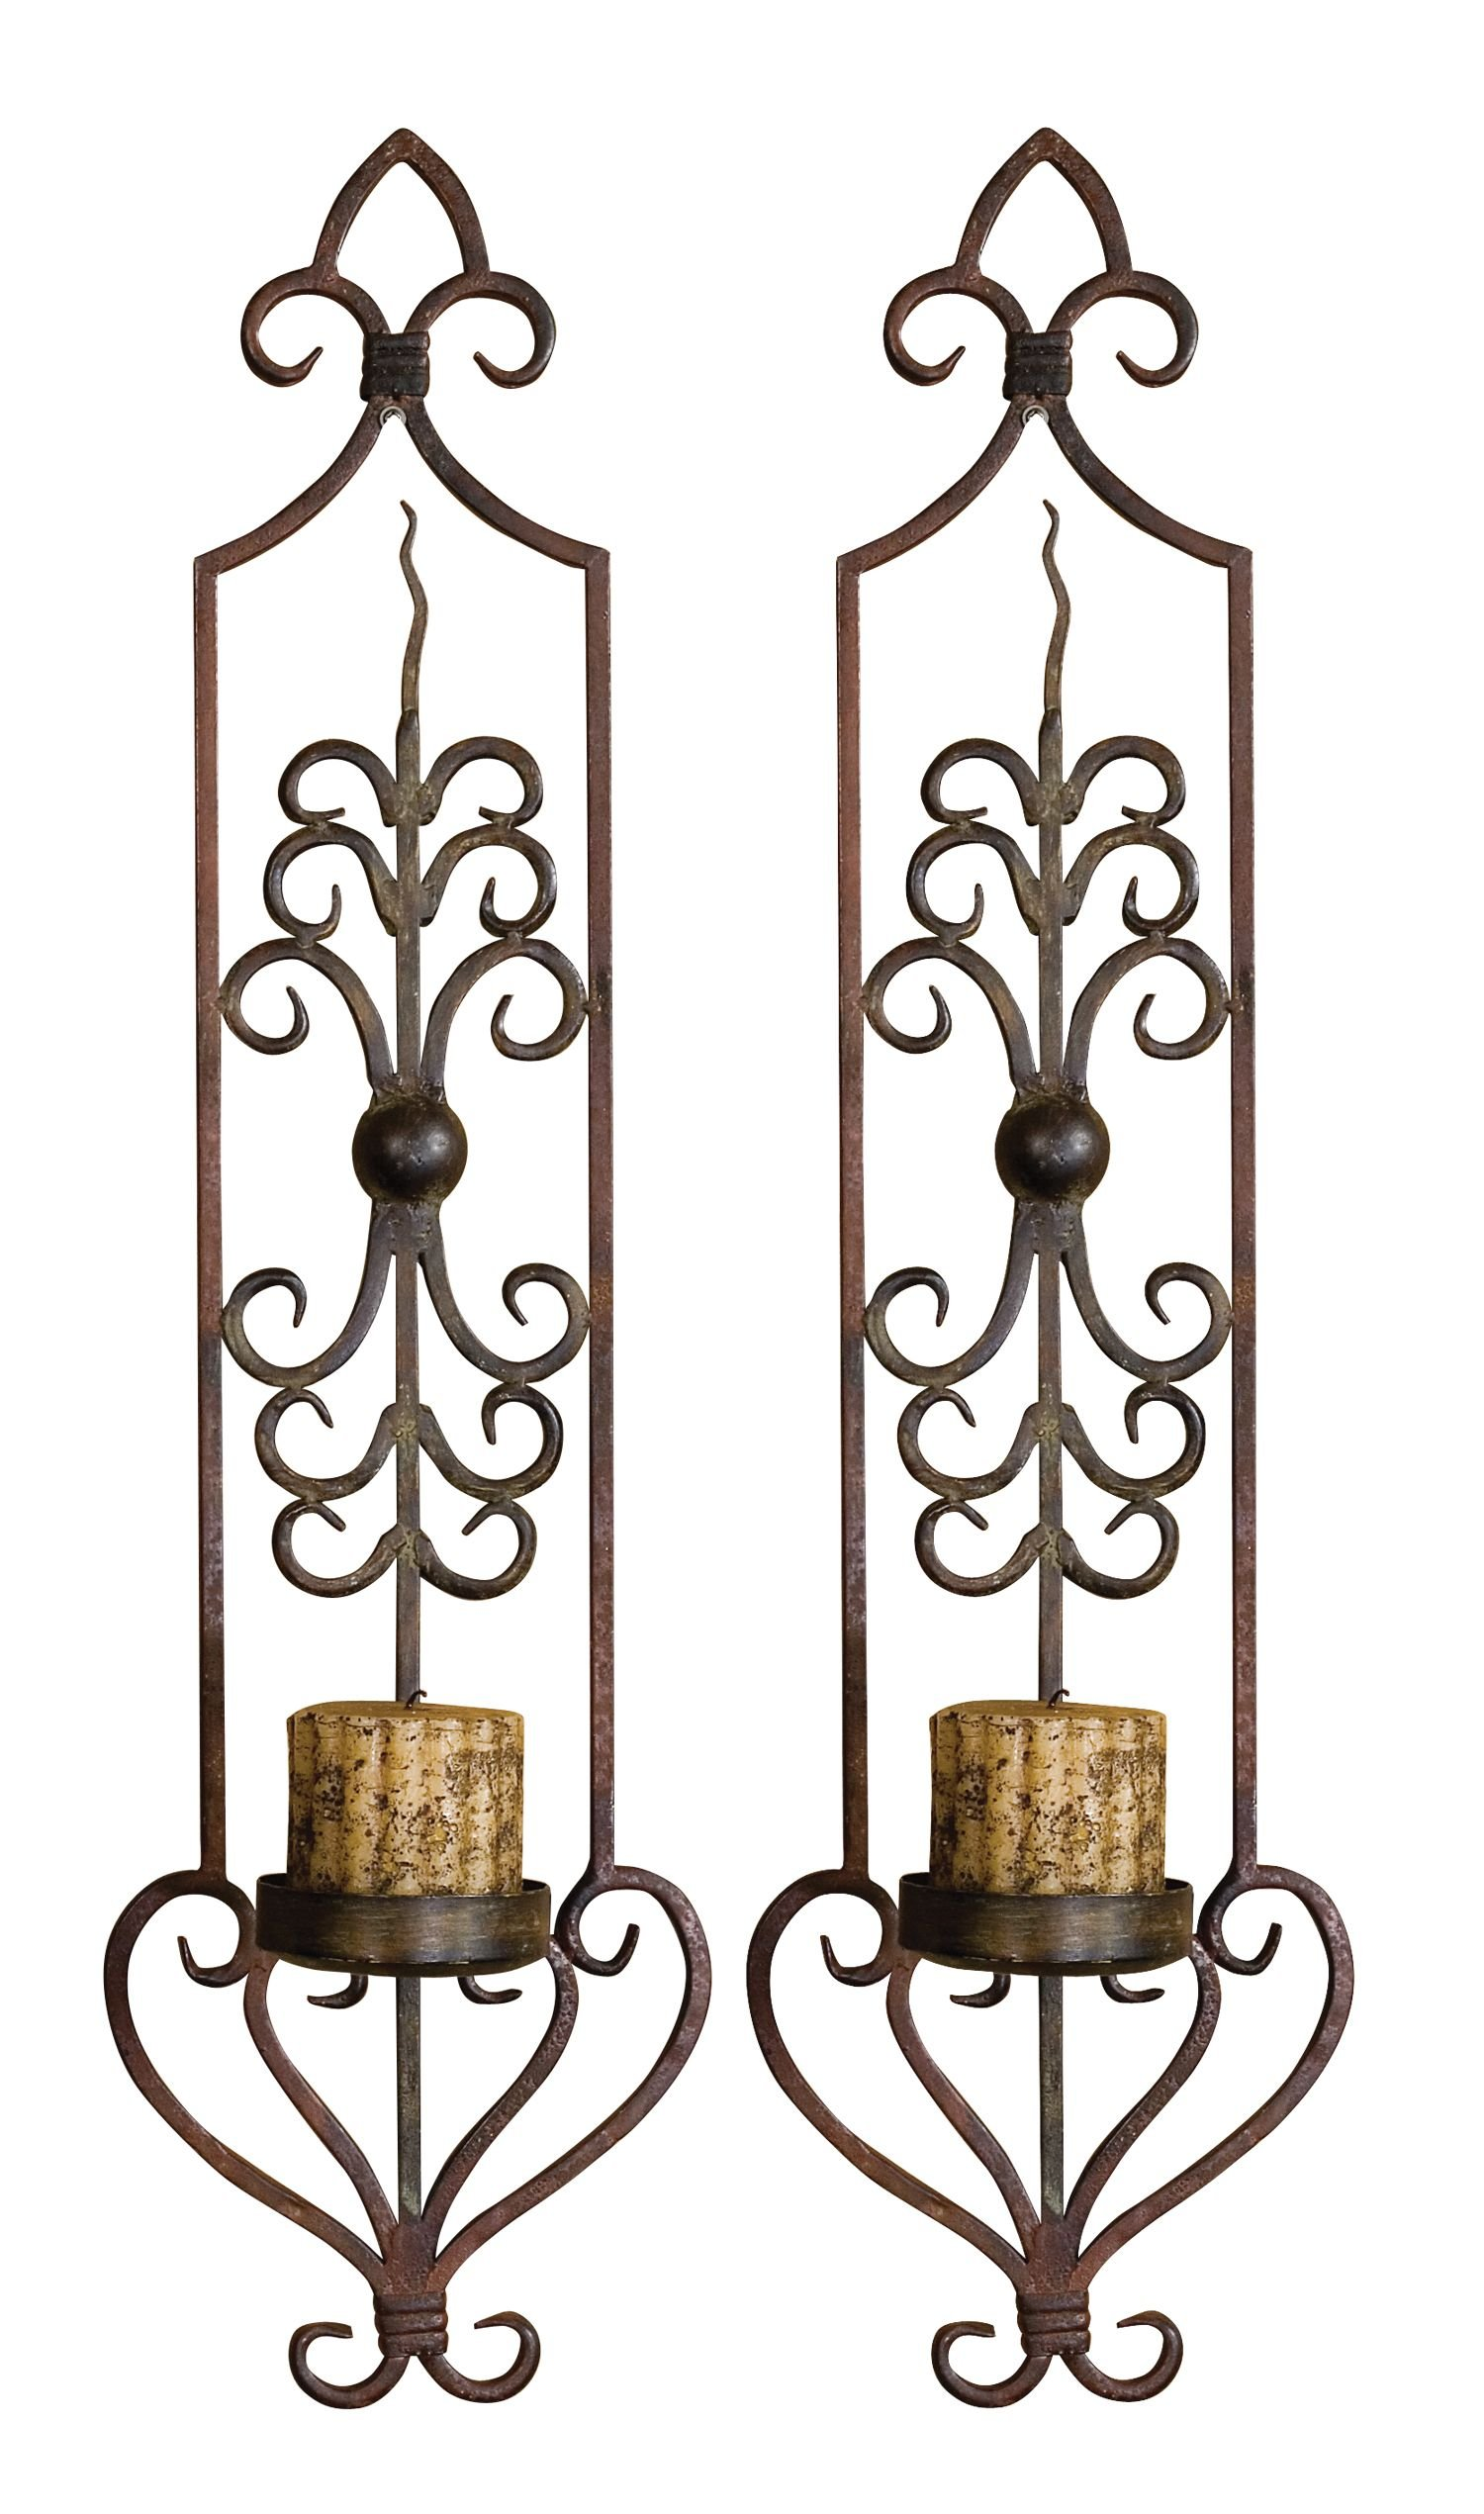 Uttermost 20987 Privas Olive Metal Wall Sconces - Set of 2